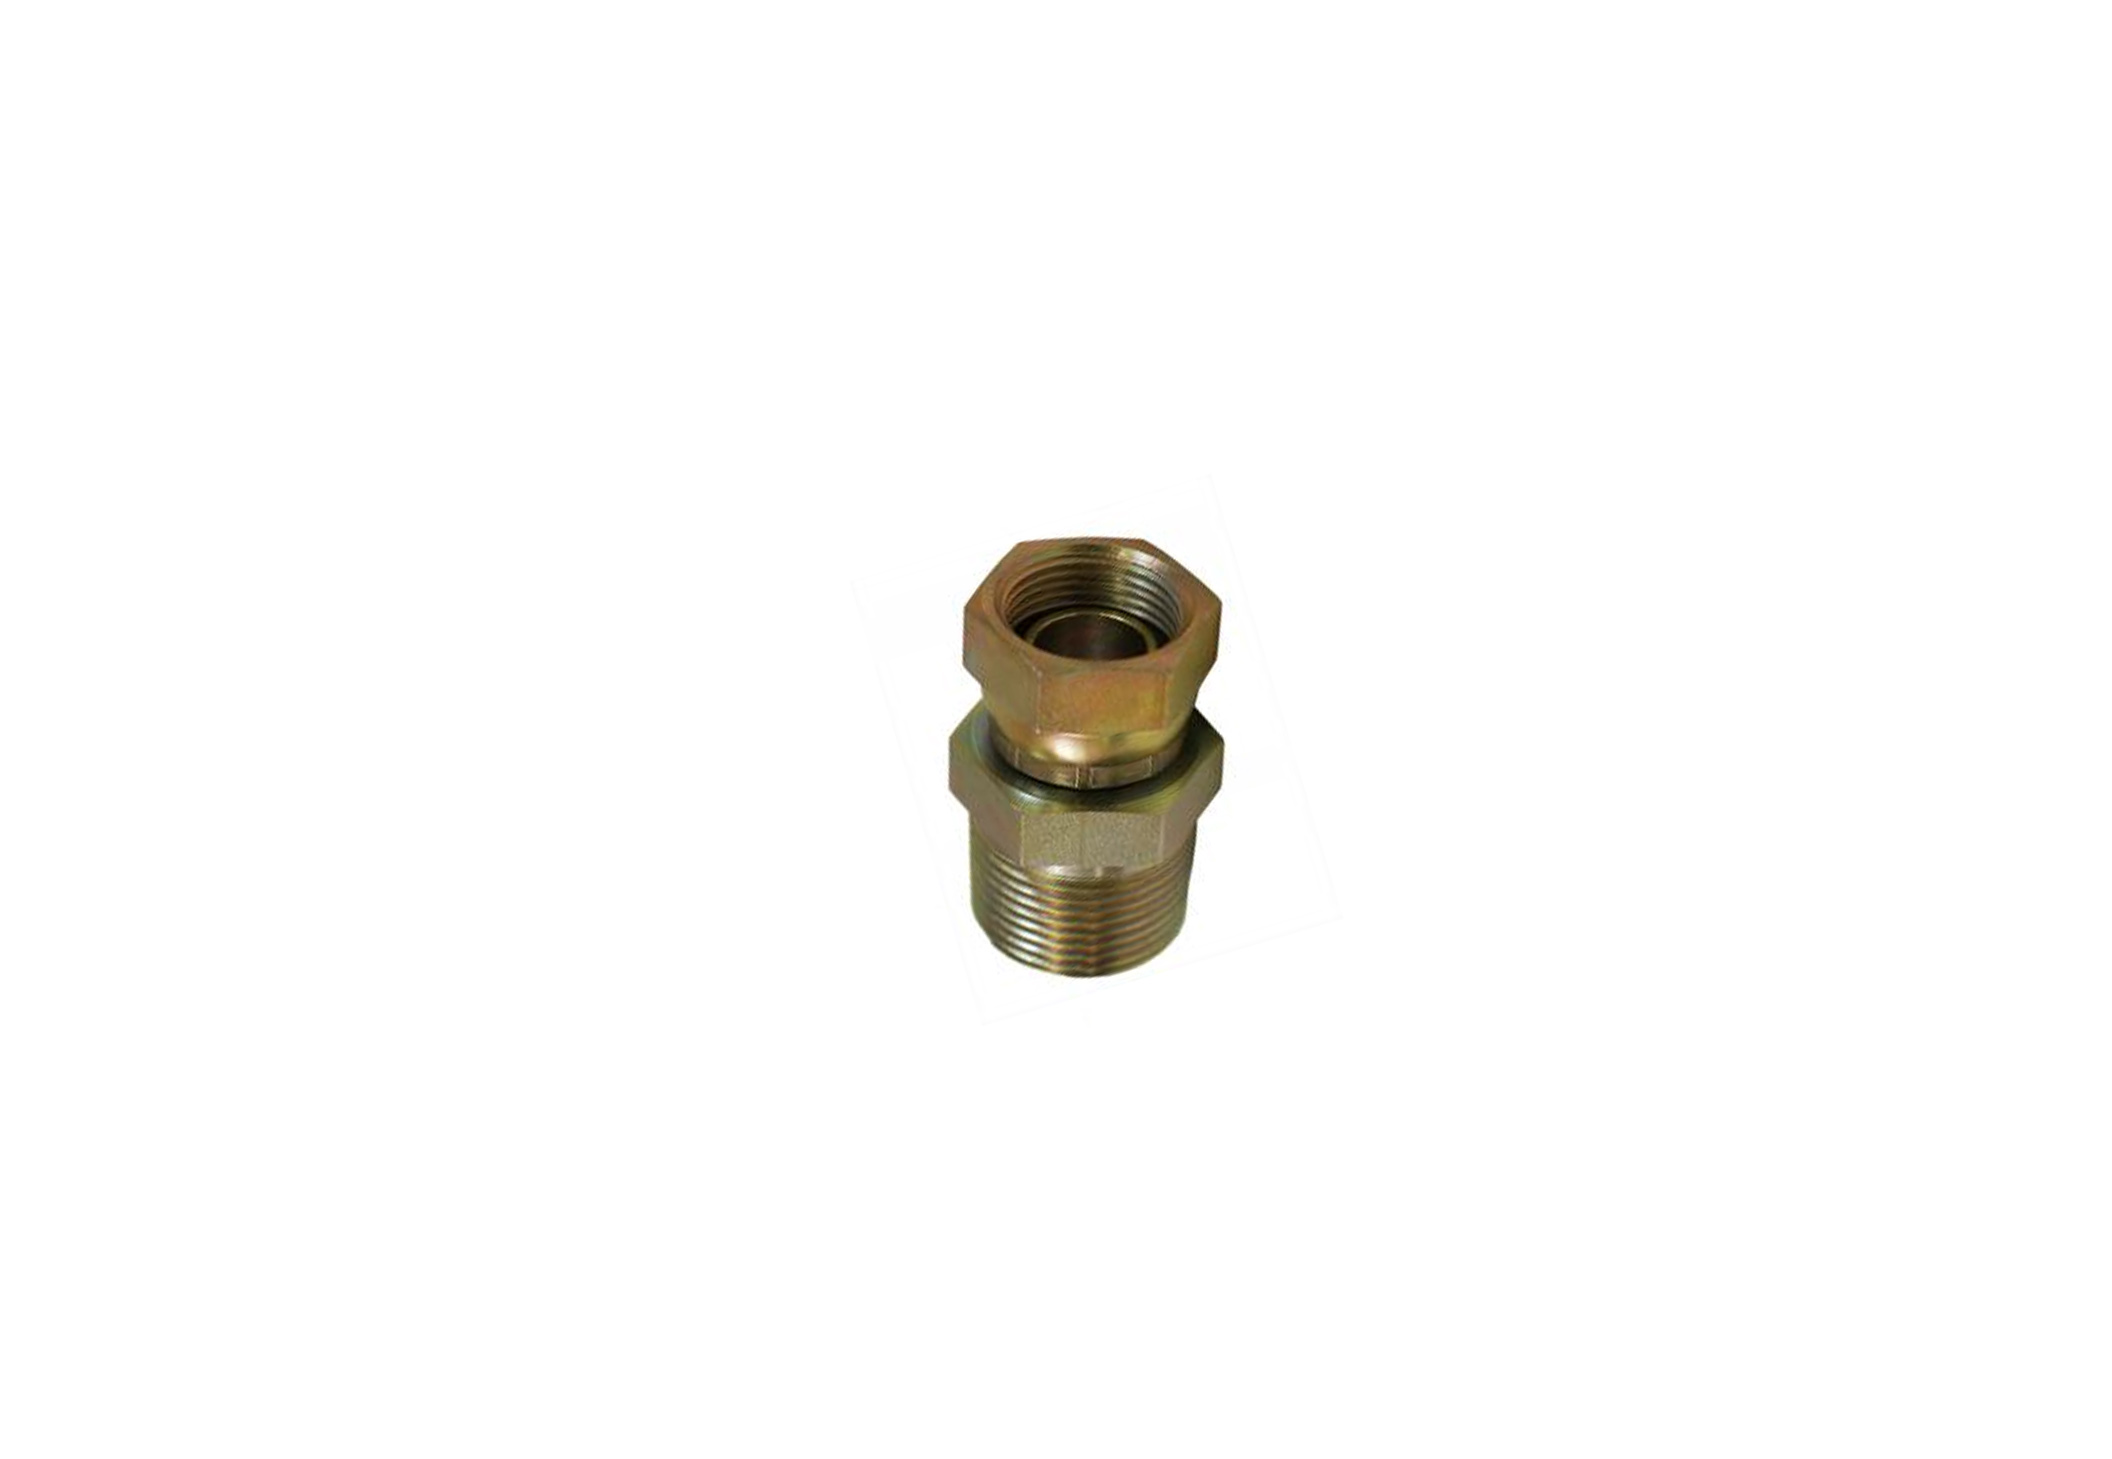 Hose-Kit-Parts - Hose-Swivel-Adapter-1-NPT